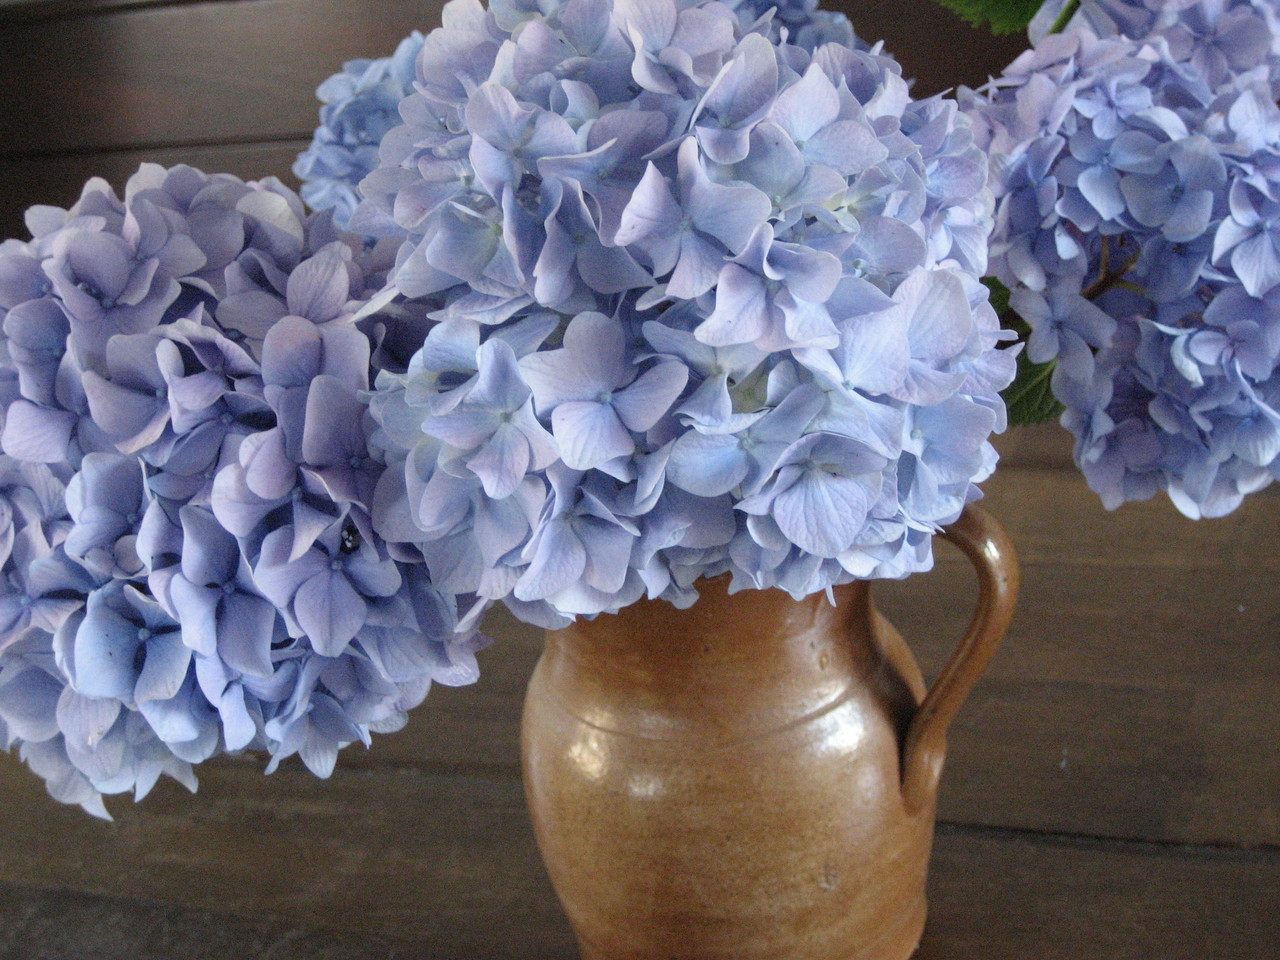 How to revive drooping hydrangeas